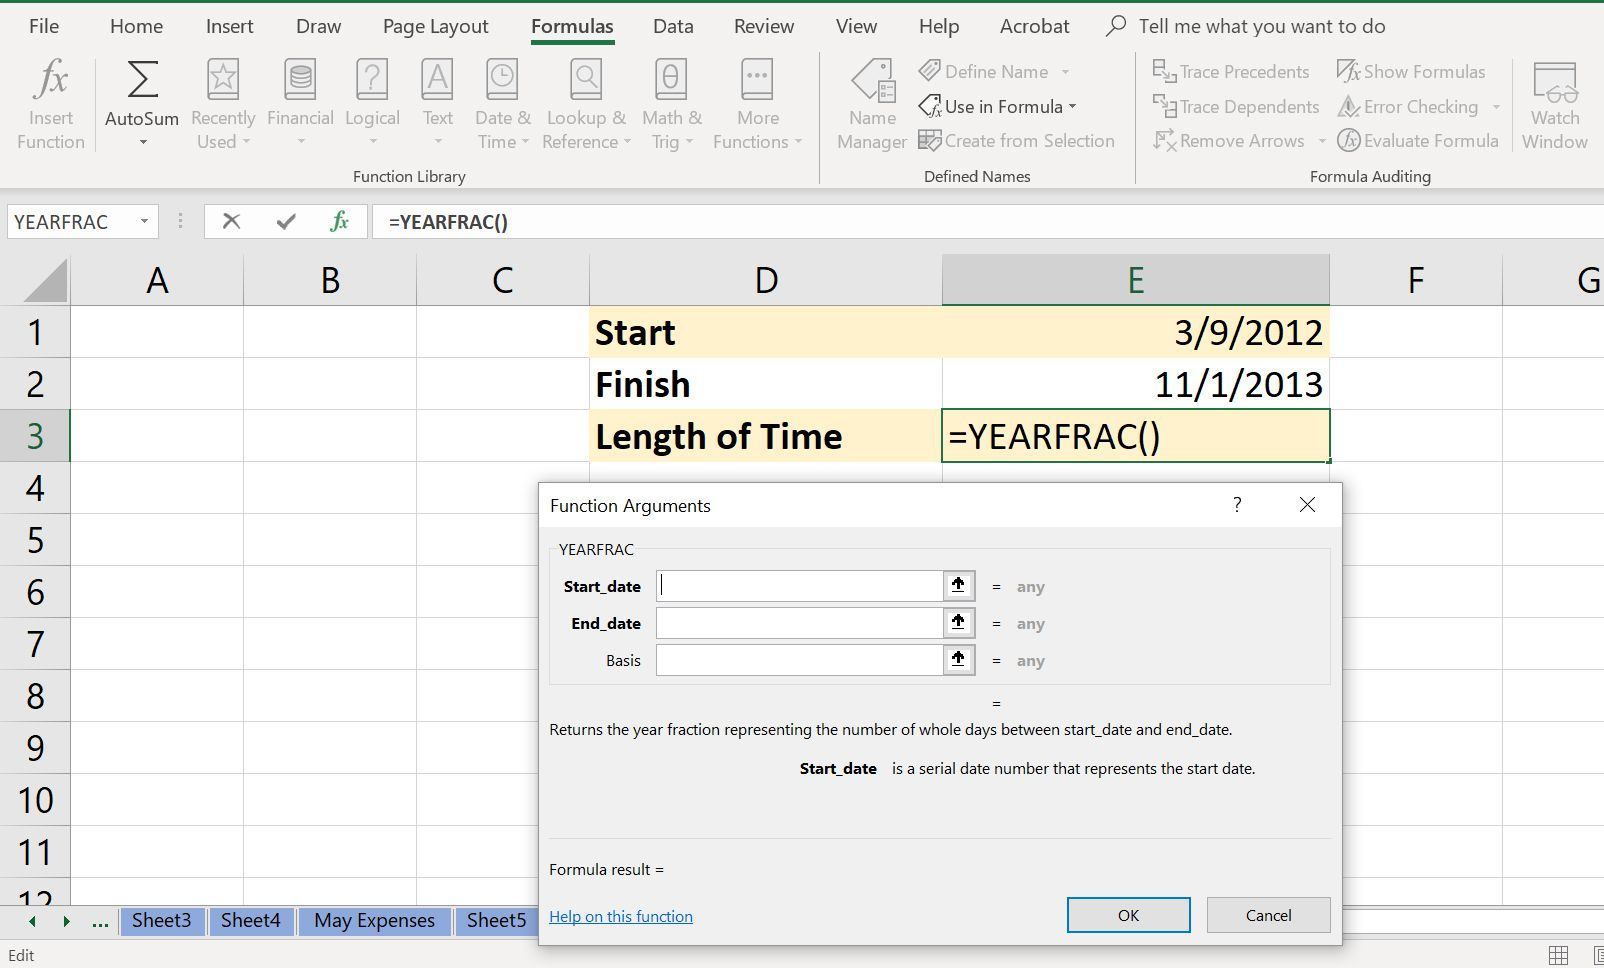 Excel spreadsheet showing the YEARFRAC Function Dialog Box